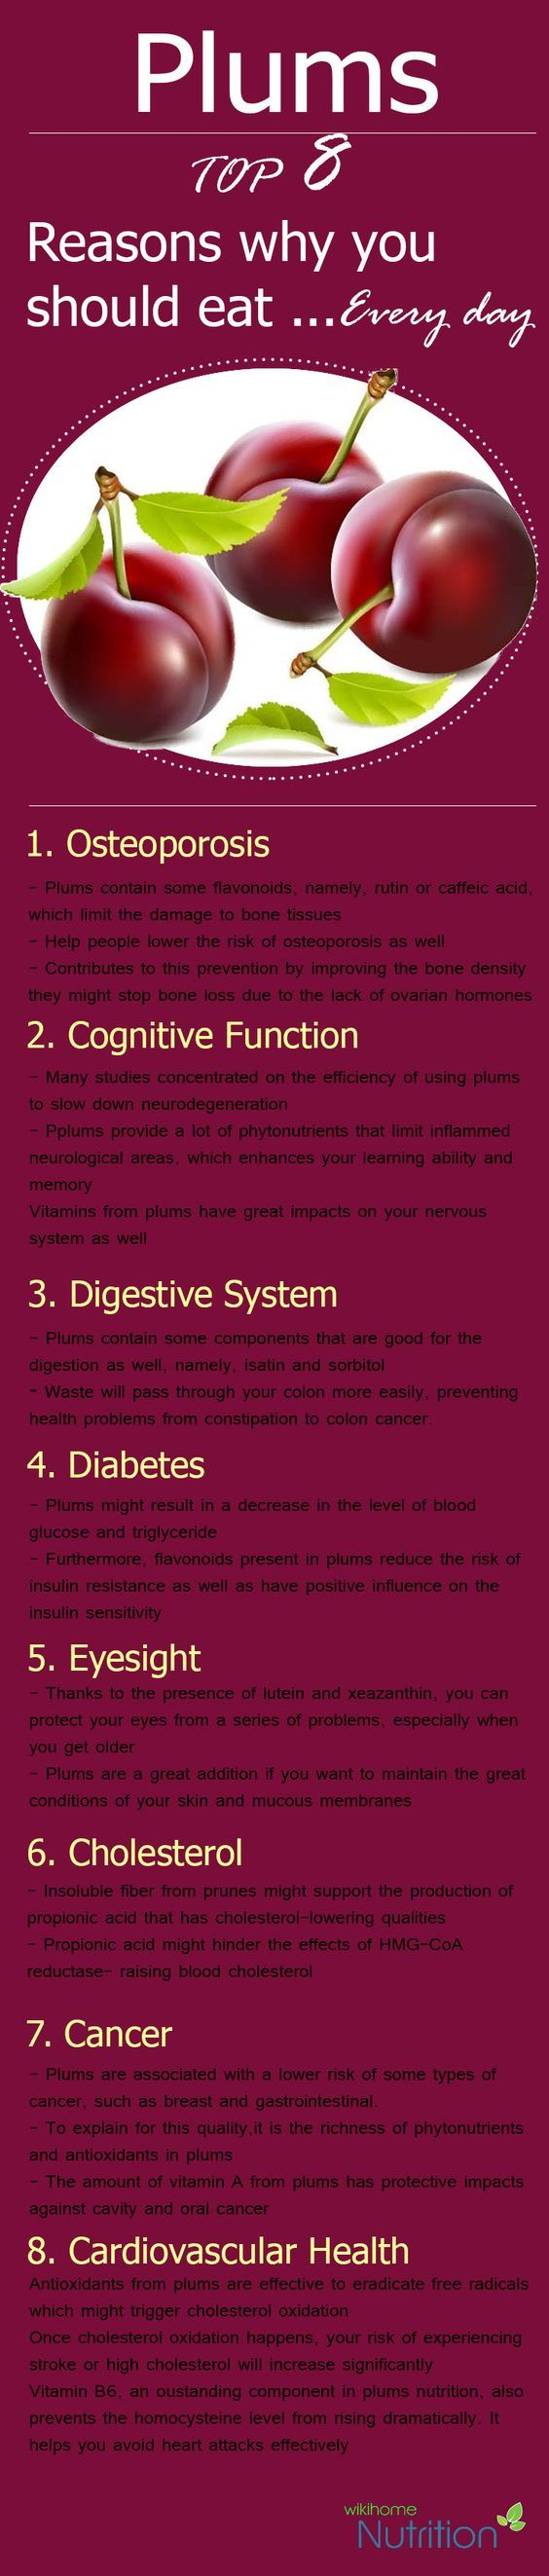 The benefits of eating plums